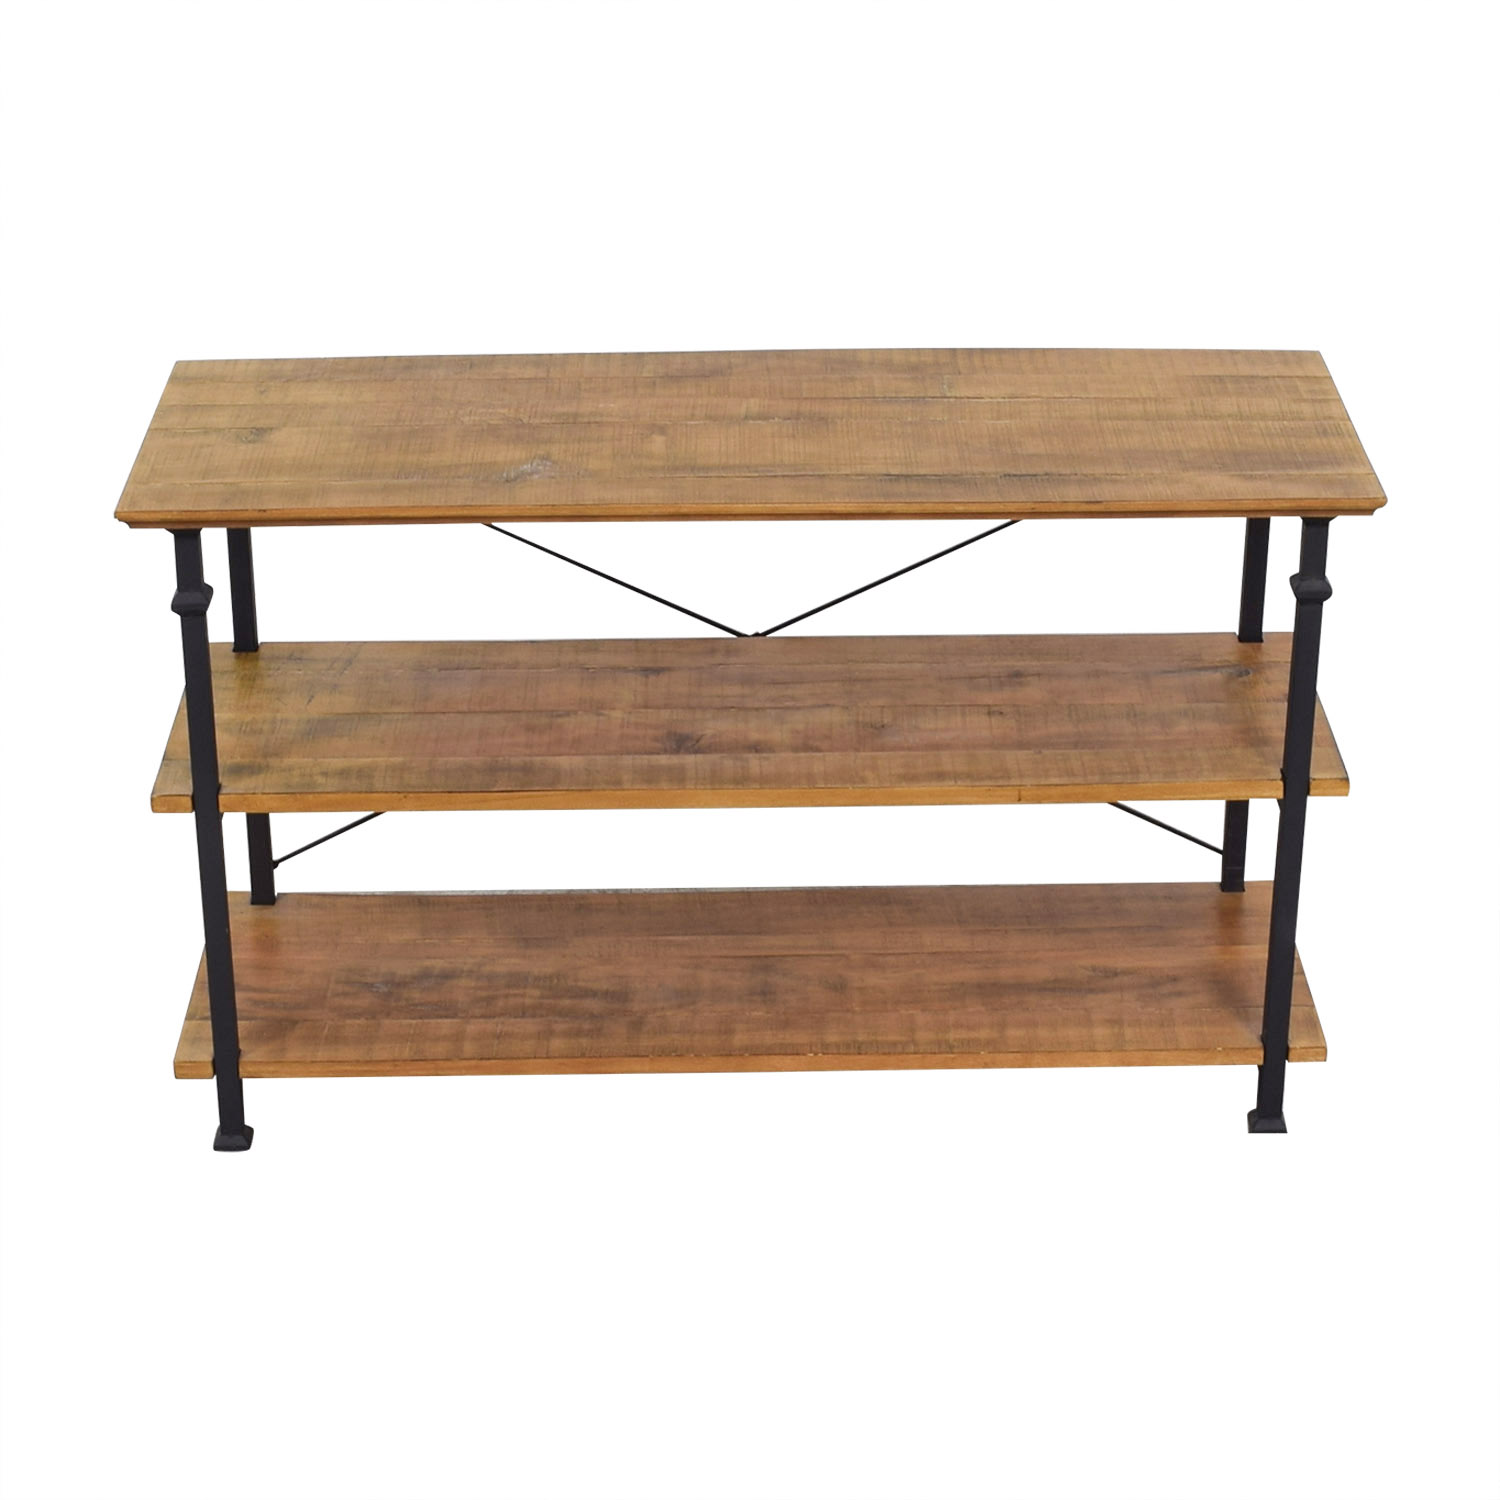 Macy's Macy's Rustic Wood Media Console Table nyc